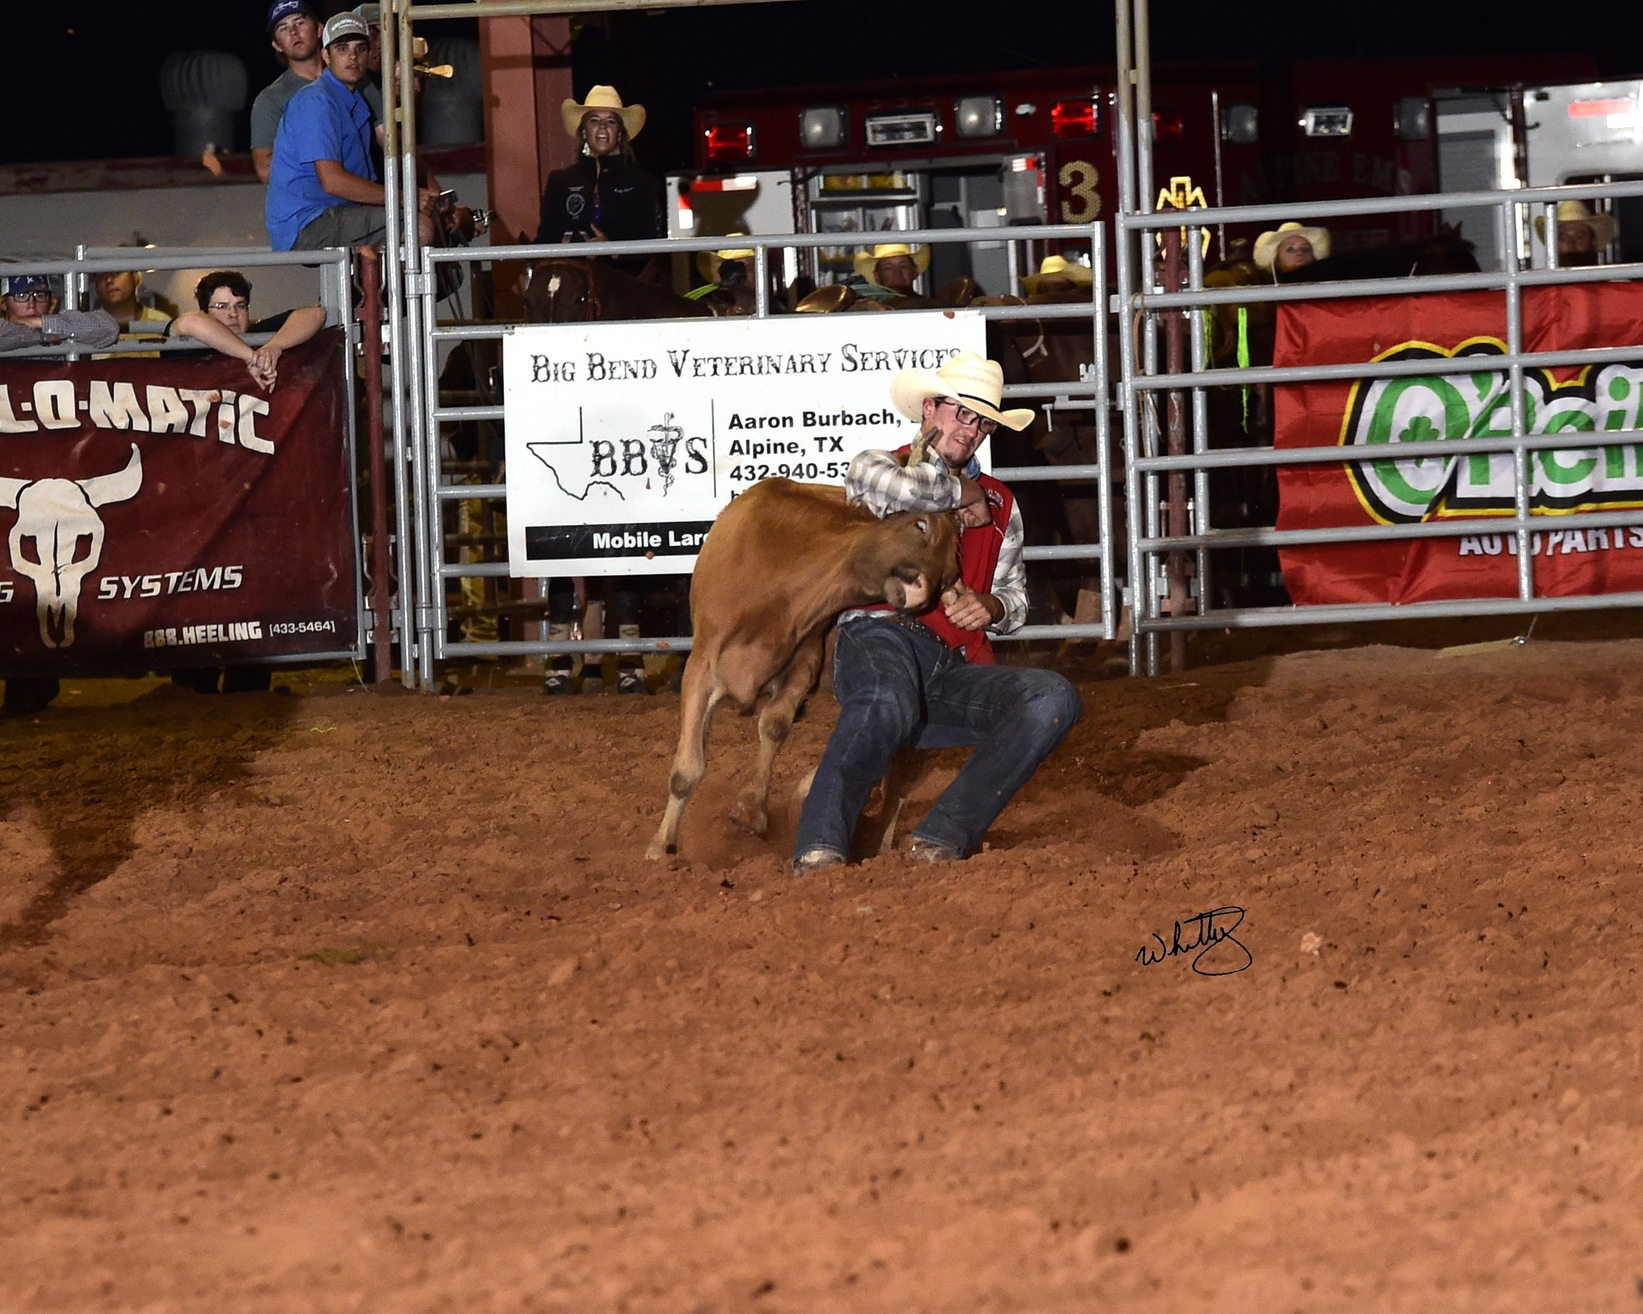 NMJC's Tee McLeod Wins Steer Wrestling at Sul Ross Rodeo